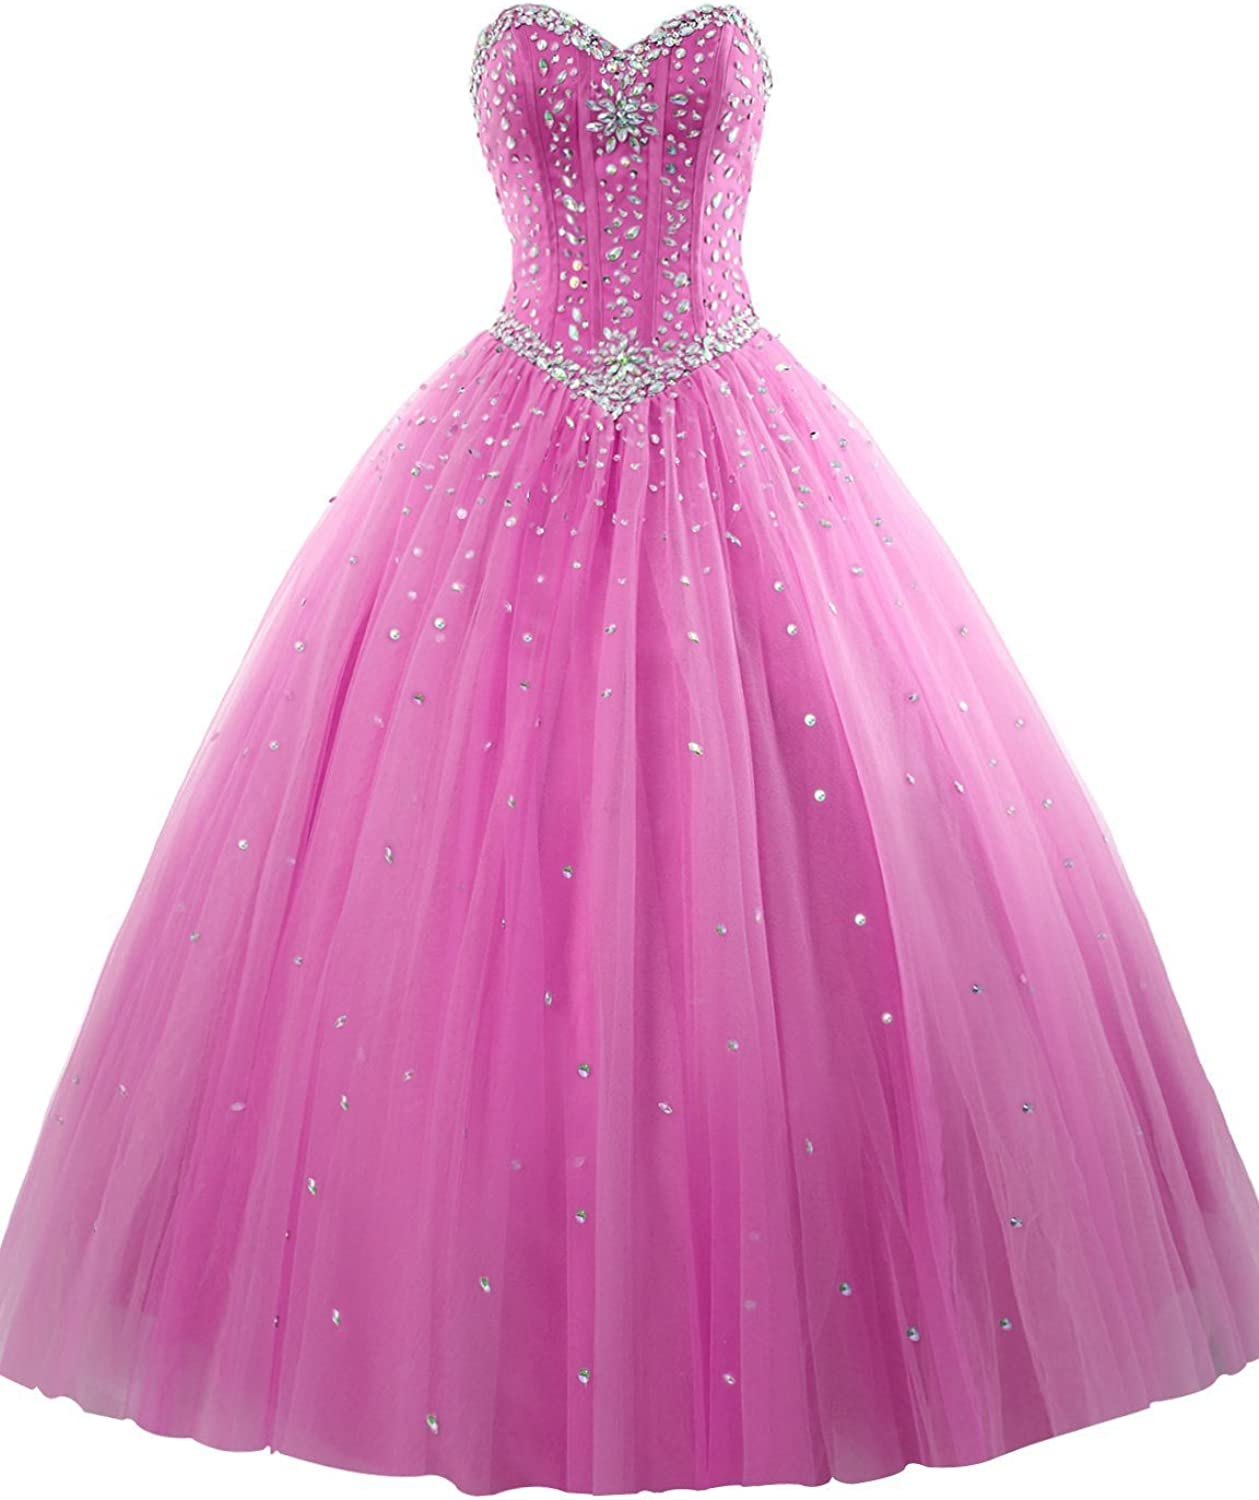 DianSheng Women's Long Prom Ball Gown Tulle Sweetheart Beaded Quinceanera Dress